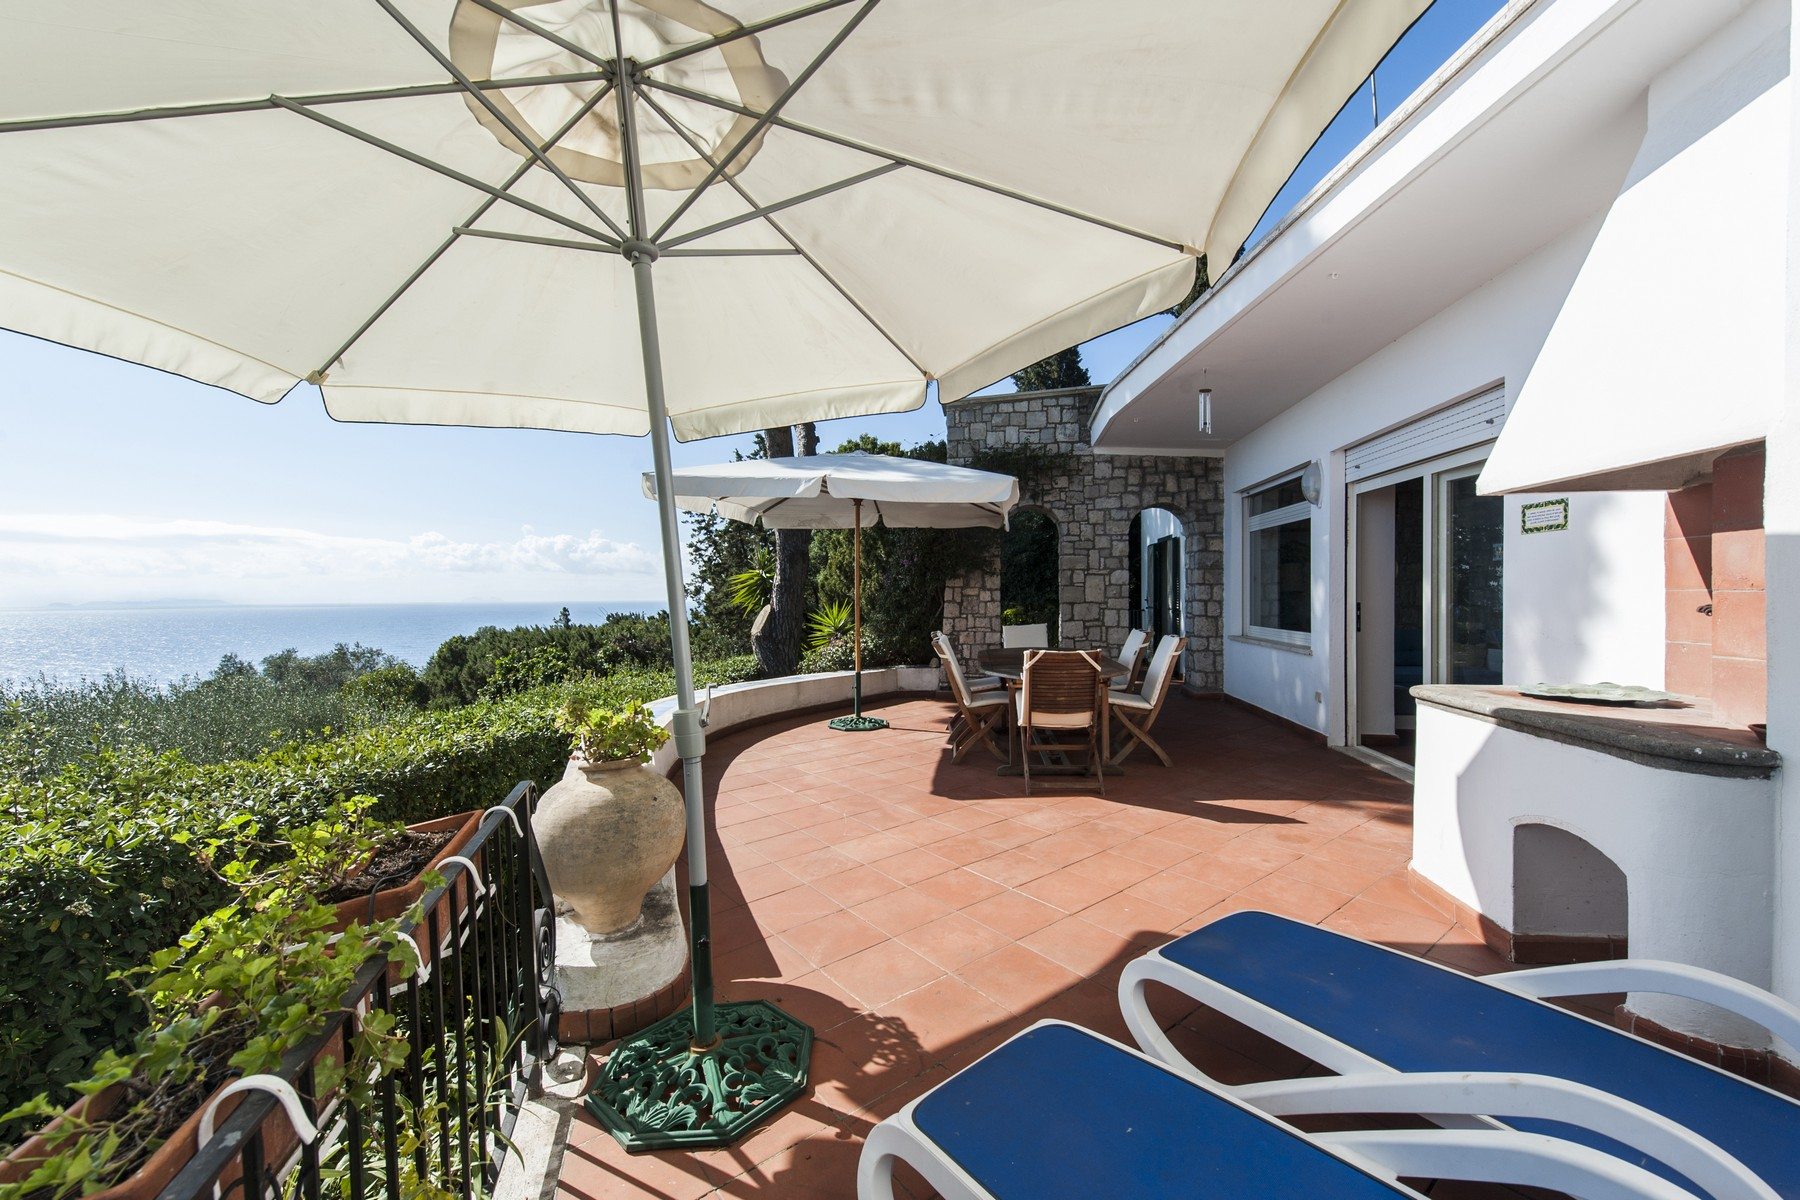 Single Family Home for Sale at Charming villa overlooking the sea in the Circeo National Park Via del Faro San Felice Circeo, Latina 04017 Italy